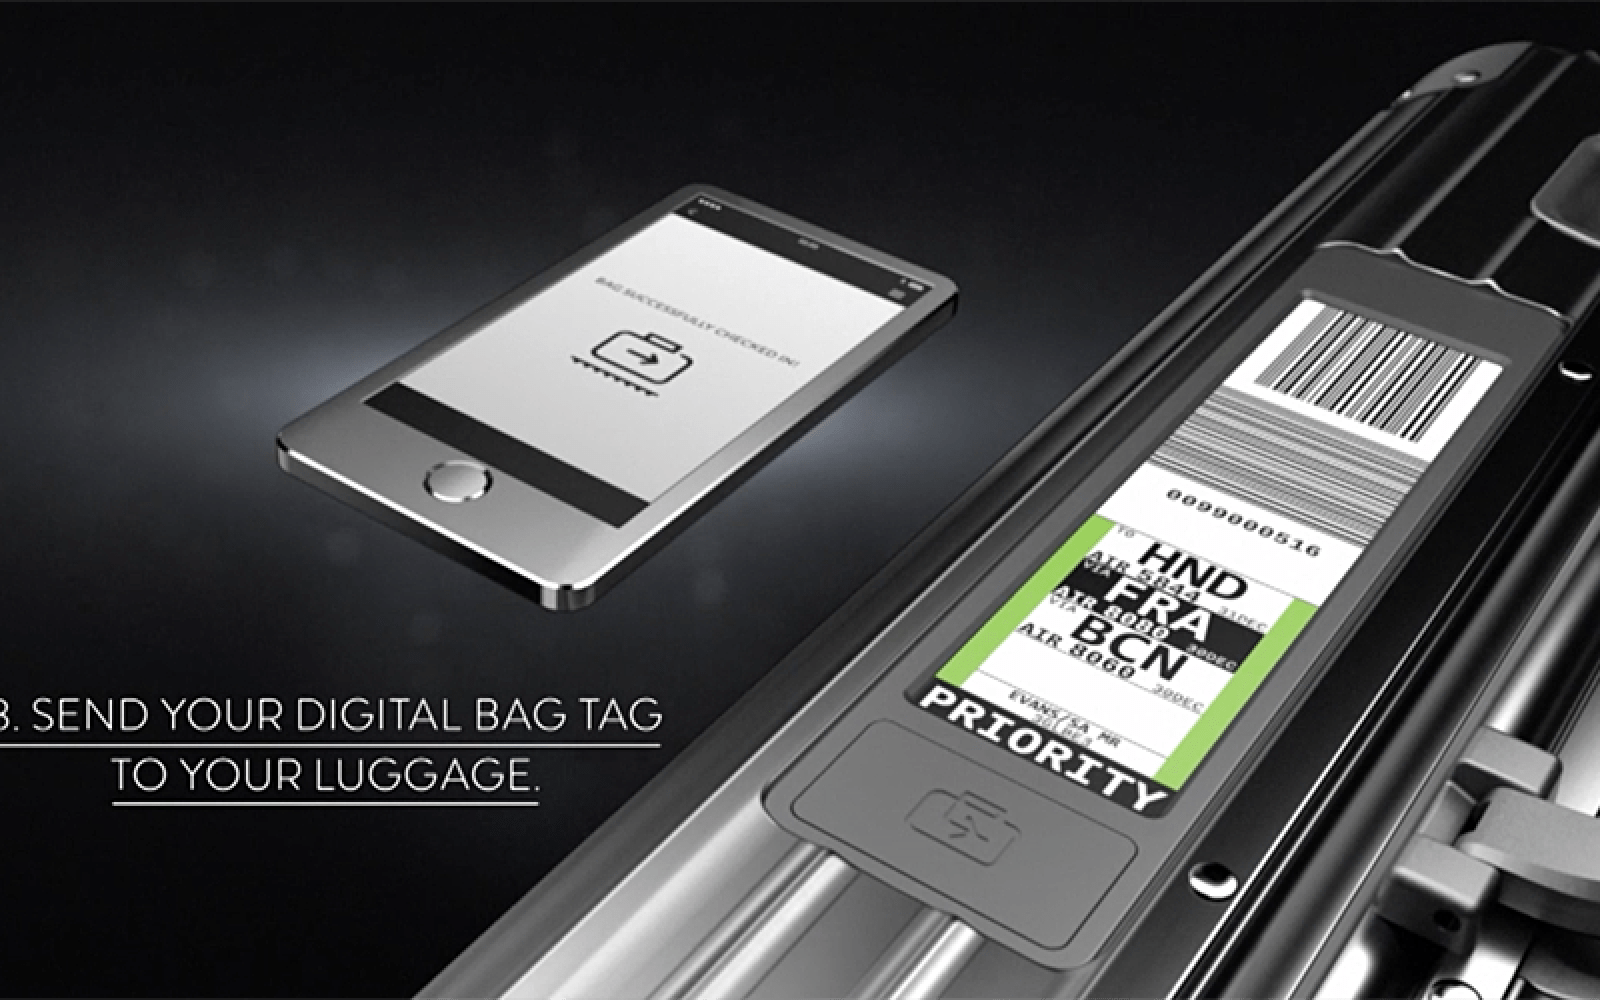 Ios App Plus E Ink Display Lets You Skip The Baggage Drop Queues Working Of Electronic Technology With Rimowas Latest Luggage